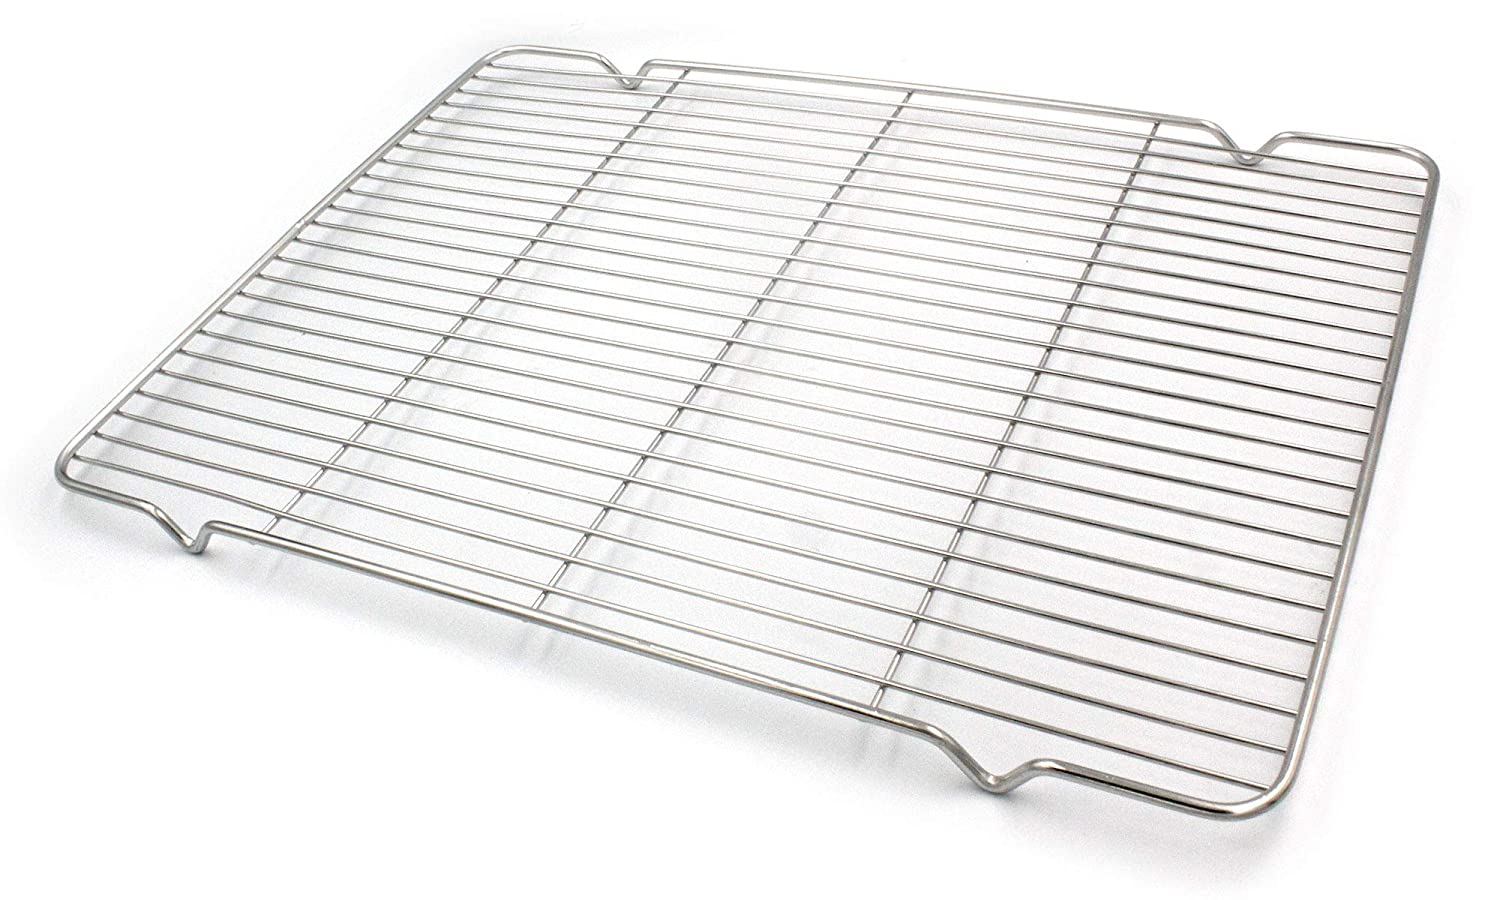 Cooling Baking Rack, Chef Quality 15.8 x 11.8 inch Tight-Grid Design, Oven Safe for Cooking, Roasting, Grilling, Fits Half Sheet Cookie Pan Handook